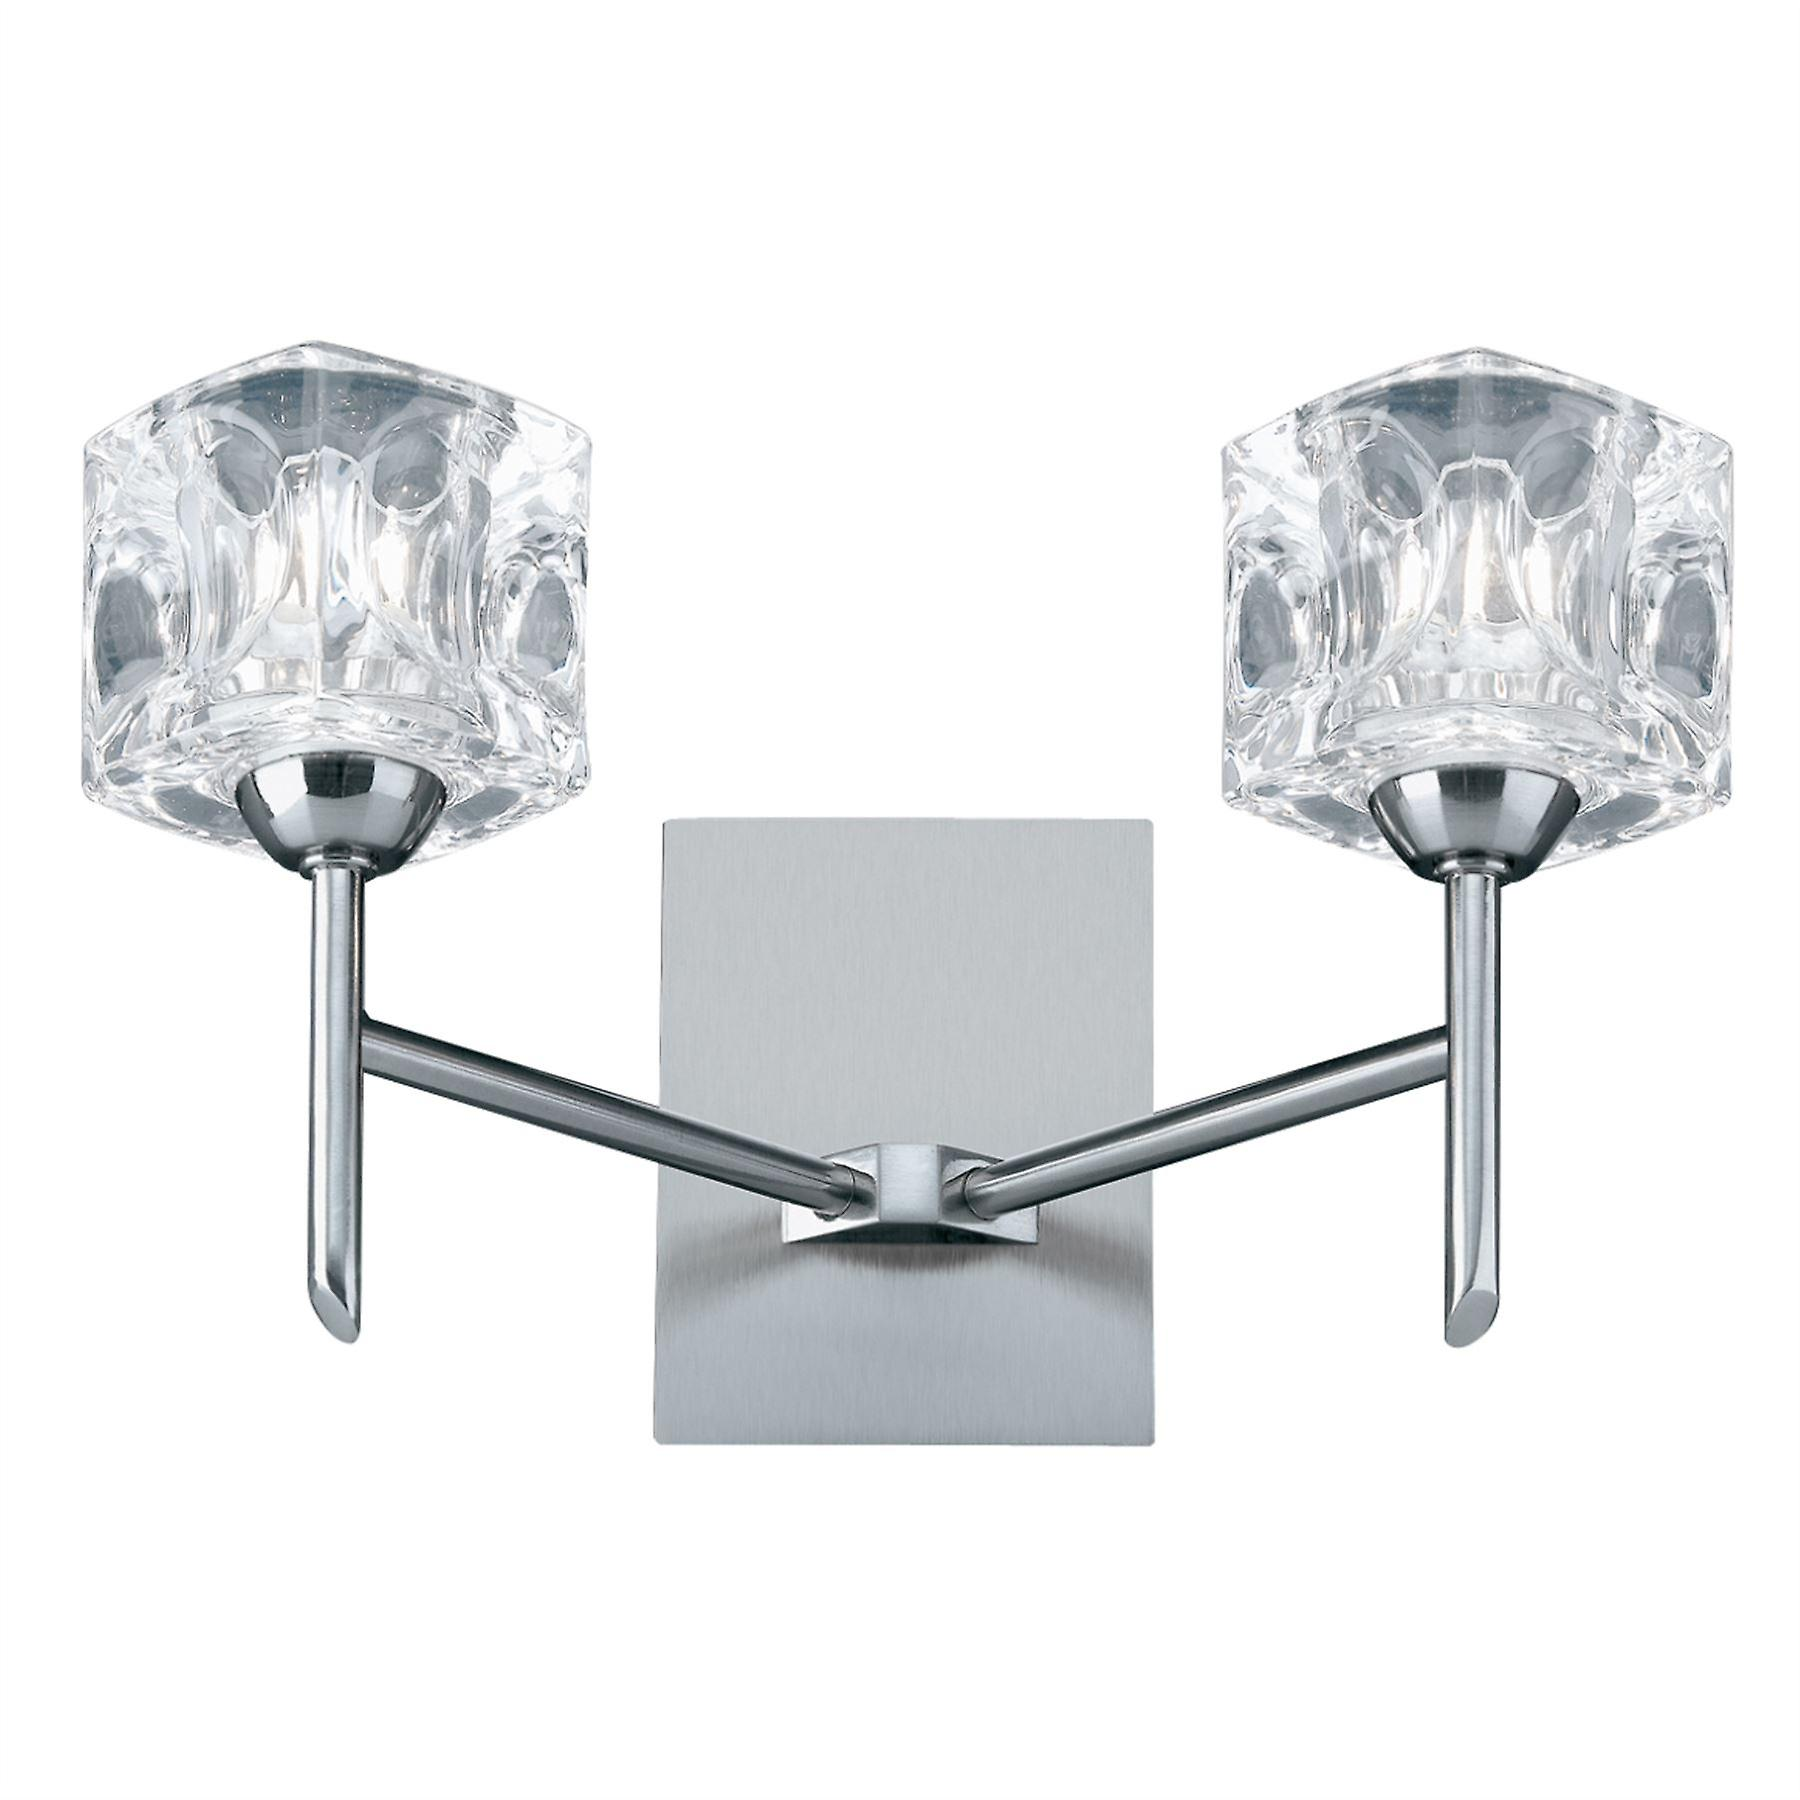 Ice Cube Satin argent And Glass LED Wall lumière - Searchlumière 4342-2-LED